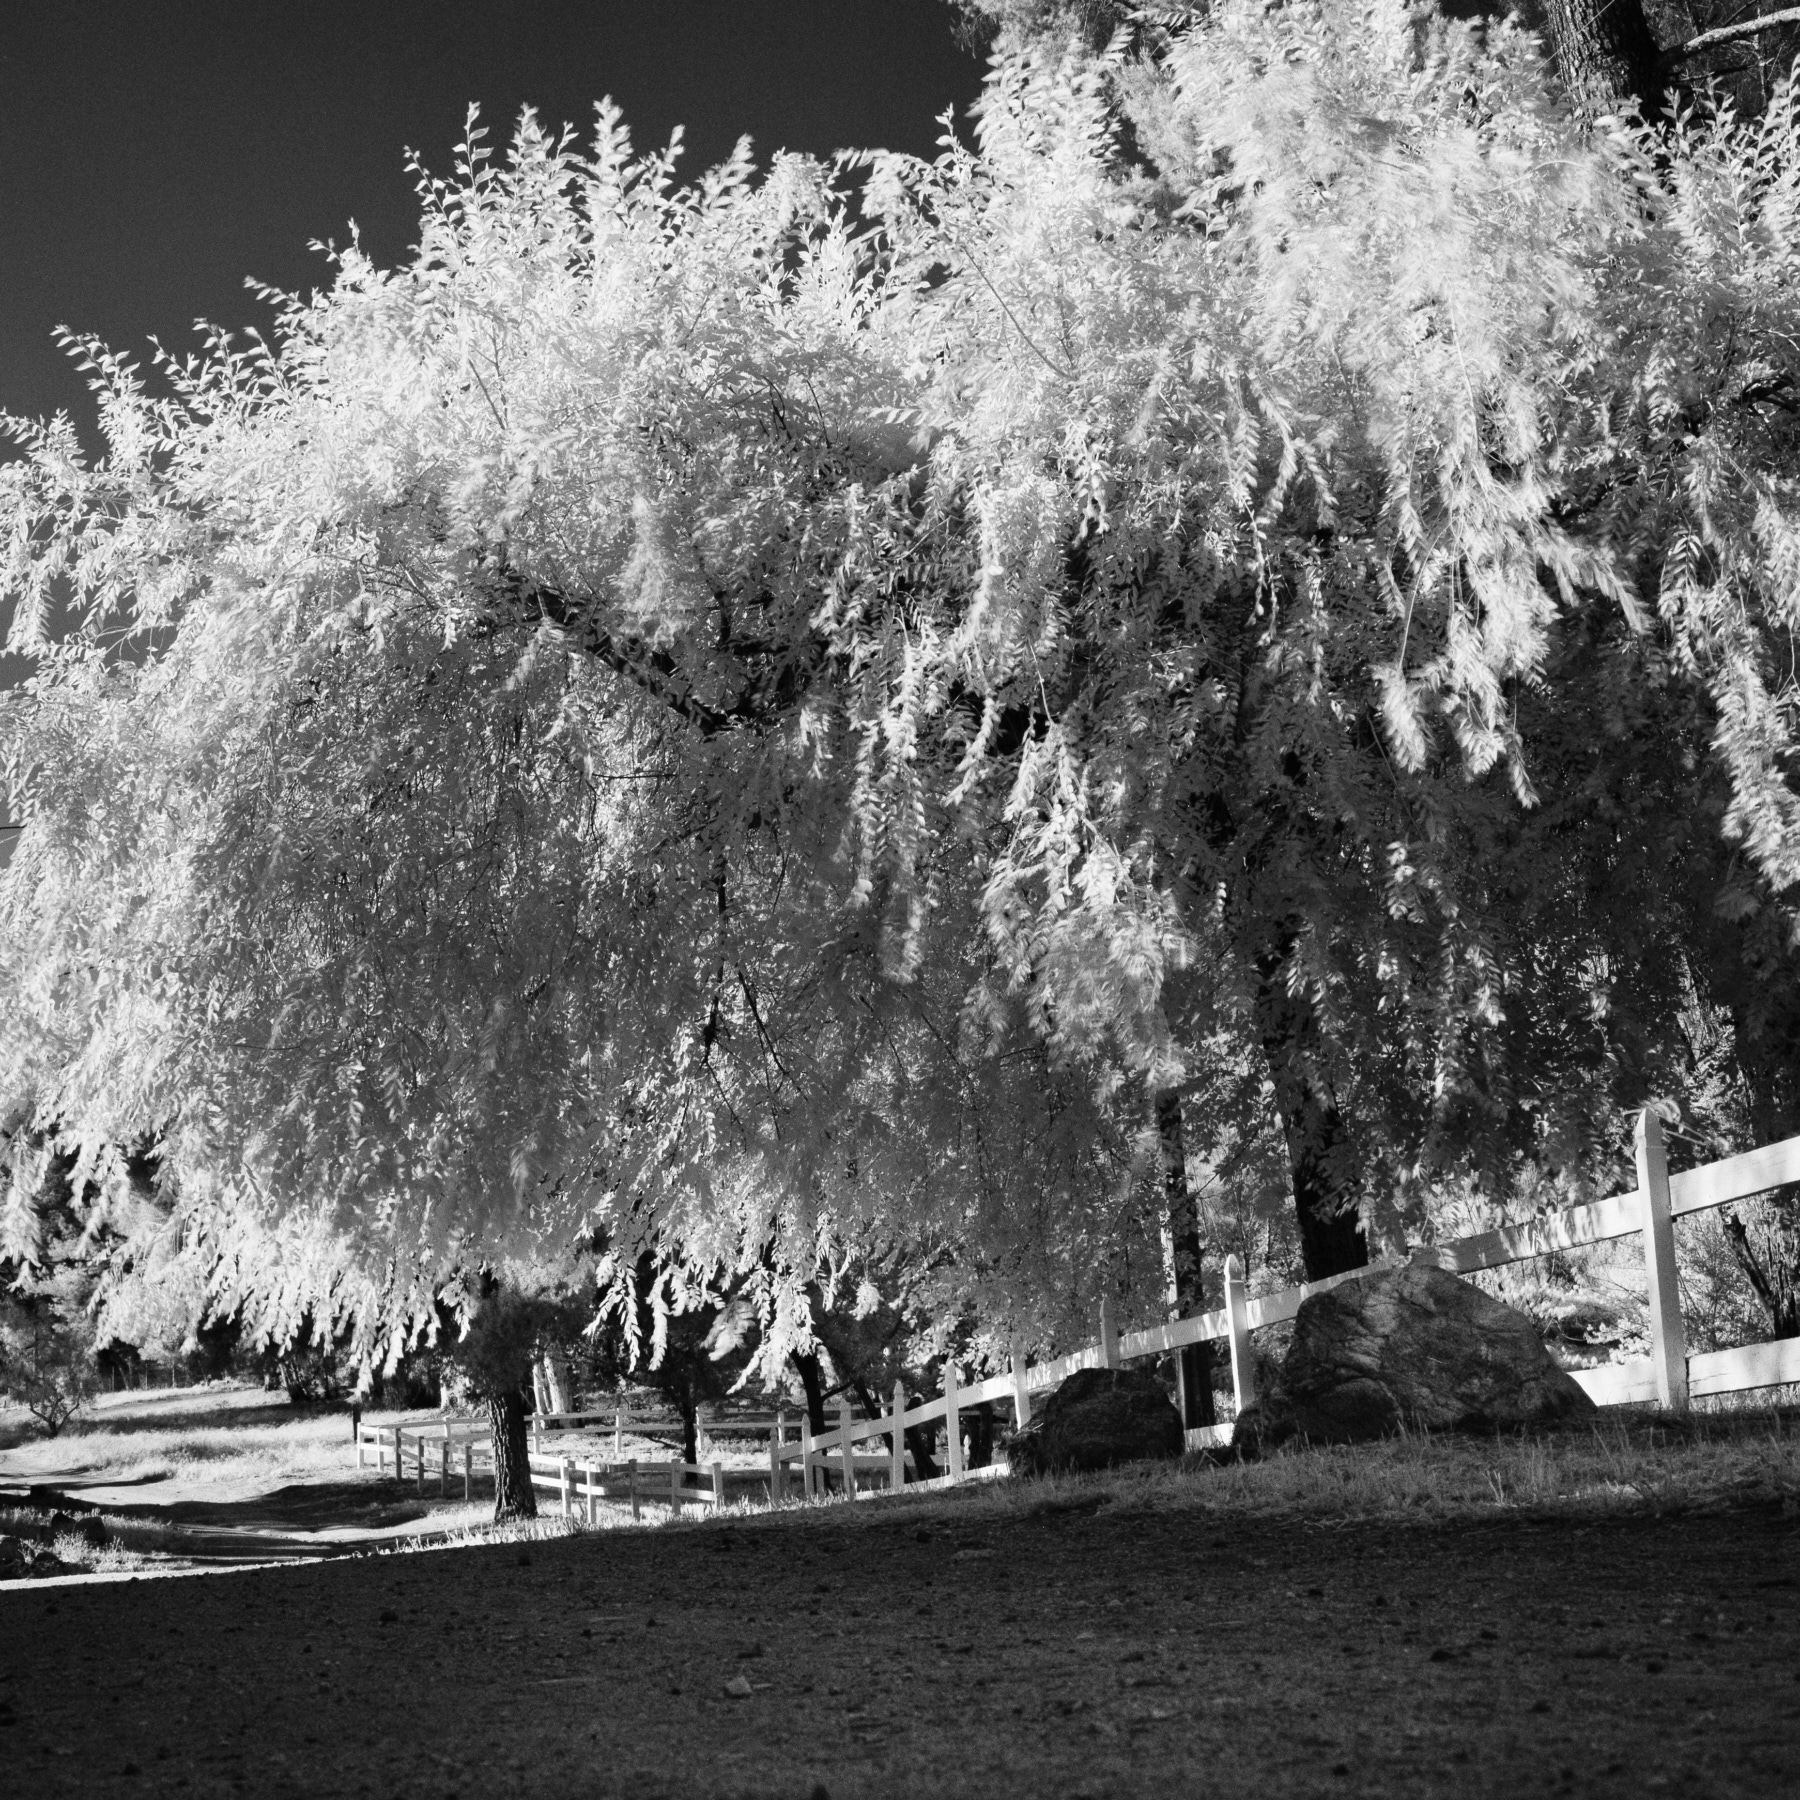 Tree by the dirt road_Infrared Photographer LA Charlie Sin